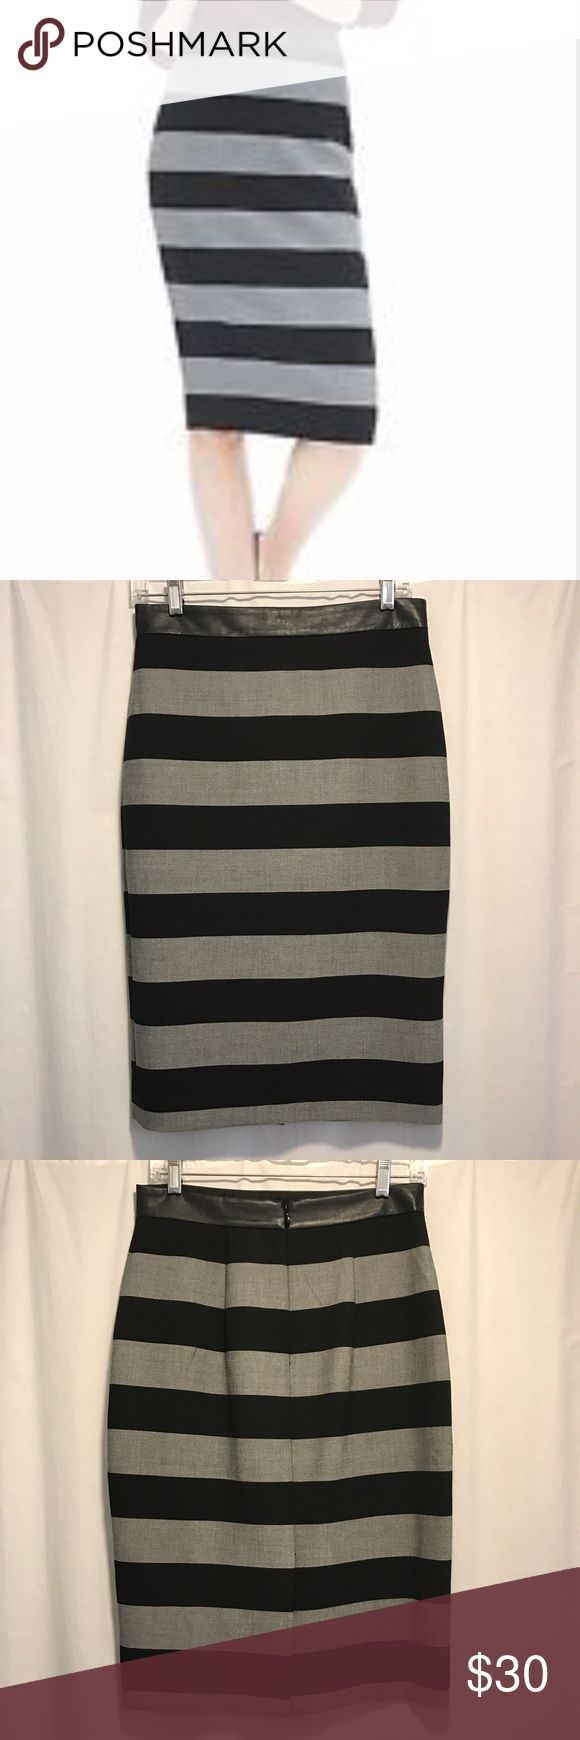 Banana Republic wide stripe pencil skirt Black and grey wide stripe pencil skirt with faux leather waist and concealed back zipper. 64% Polyester, 32% Viscose, 4% Spandex. Worn only twice in excellent condition Banana Republic Skirts Midi